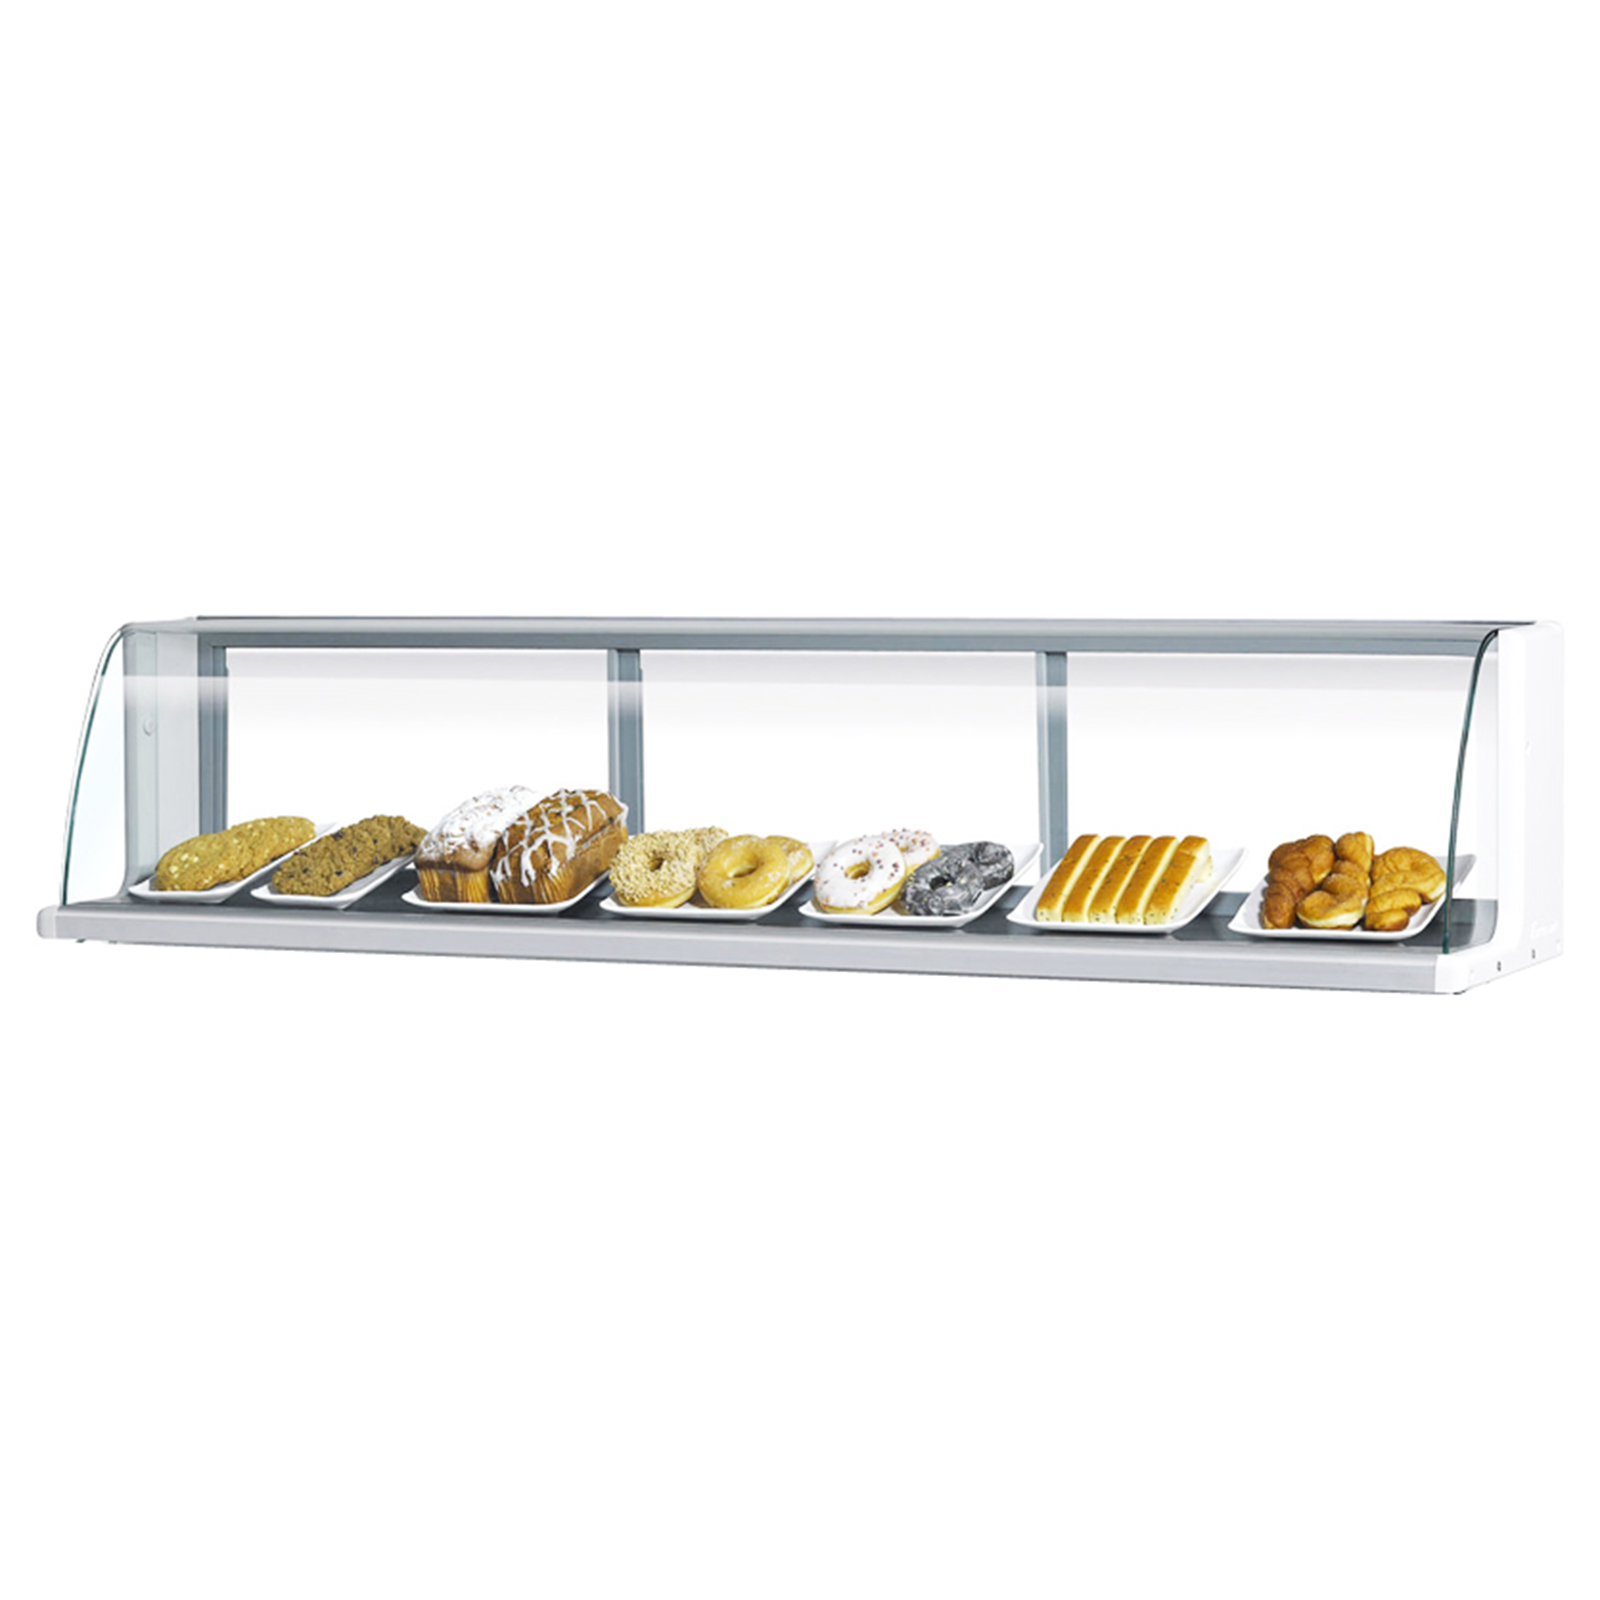 Turbo Air TOMD-60LB display case, non-refrigerated countertop